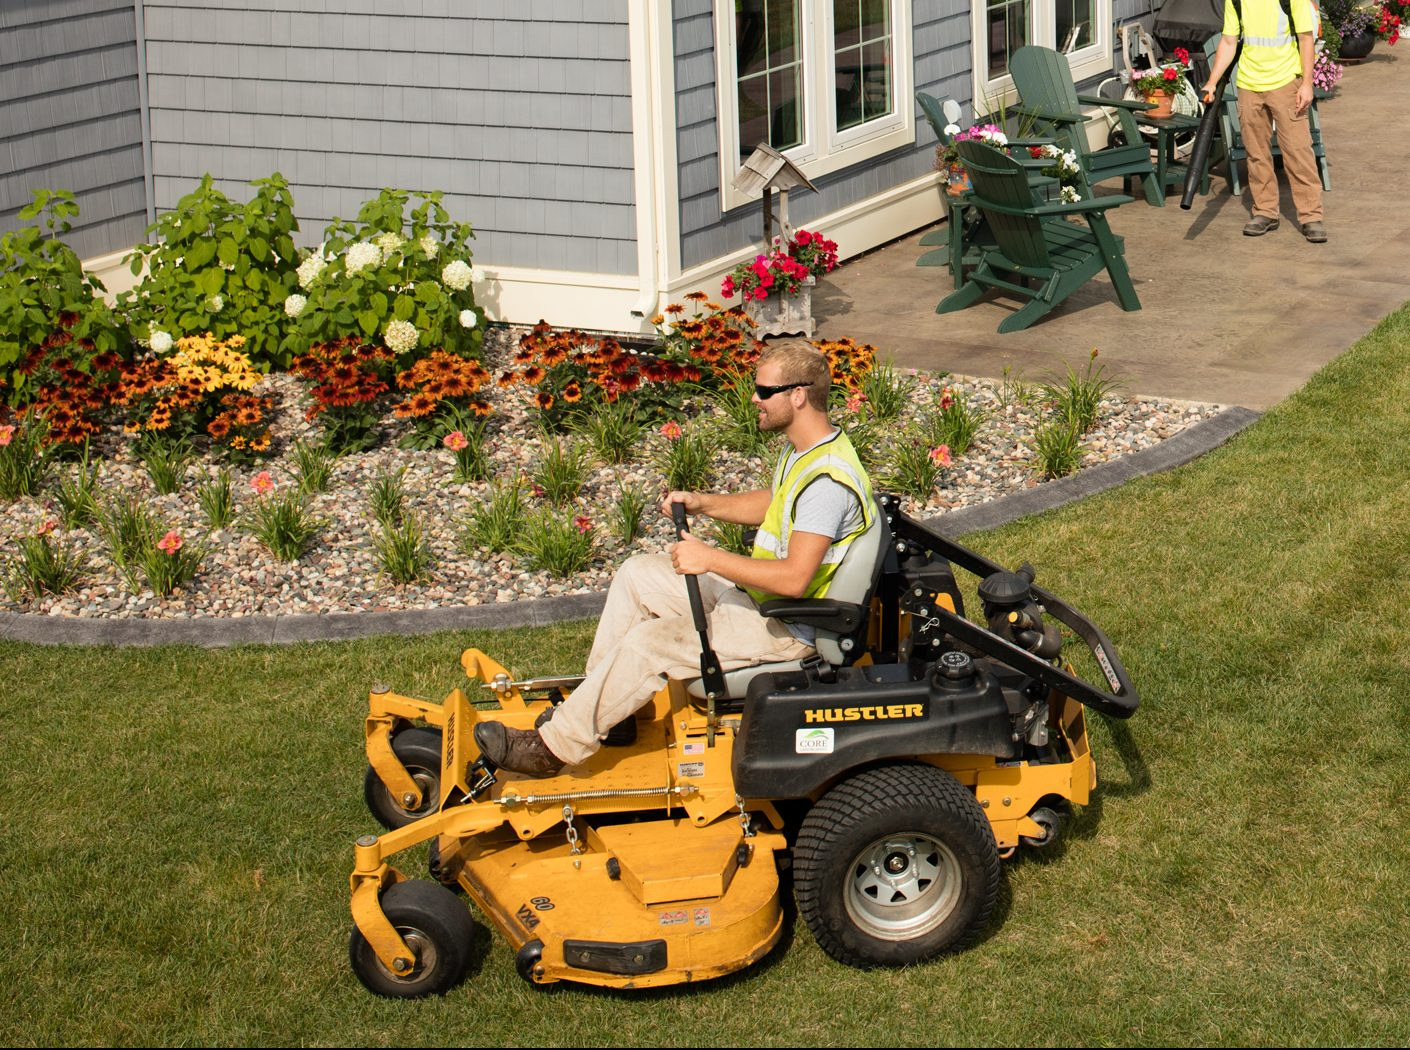 Zero-turn mower best maintenance practices